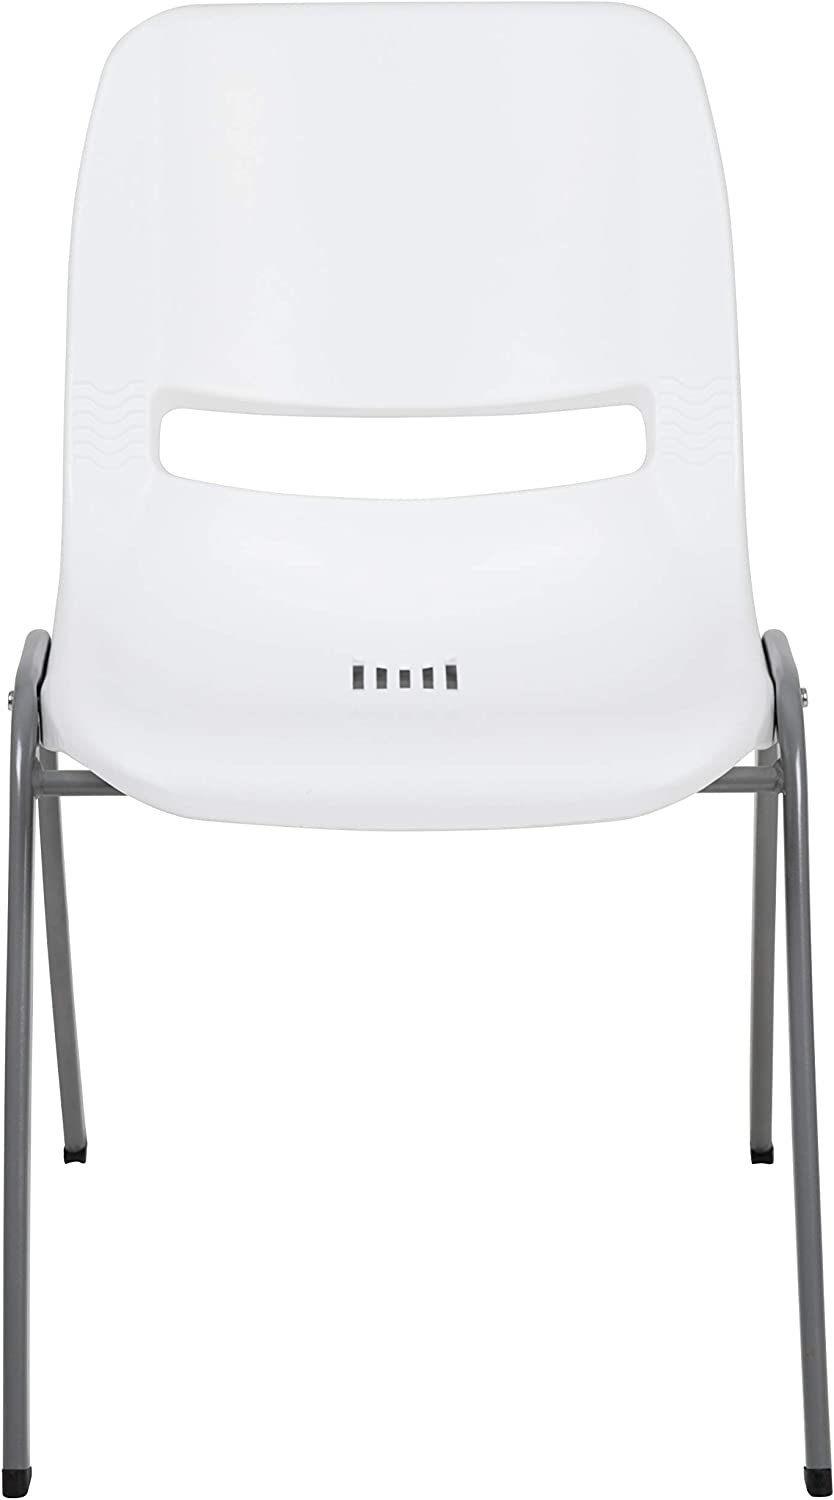 Capacity Gray Ergonomic Shell Stack Chair with Black Frame Flash Furniture HERCULES Series 880 lb